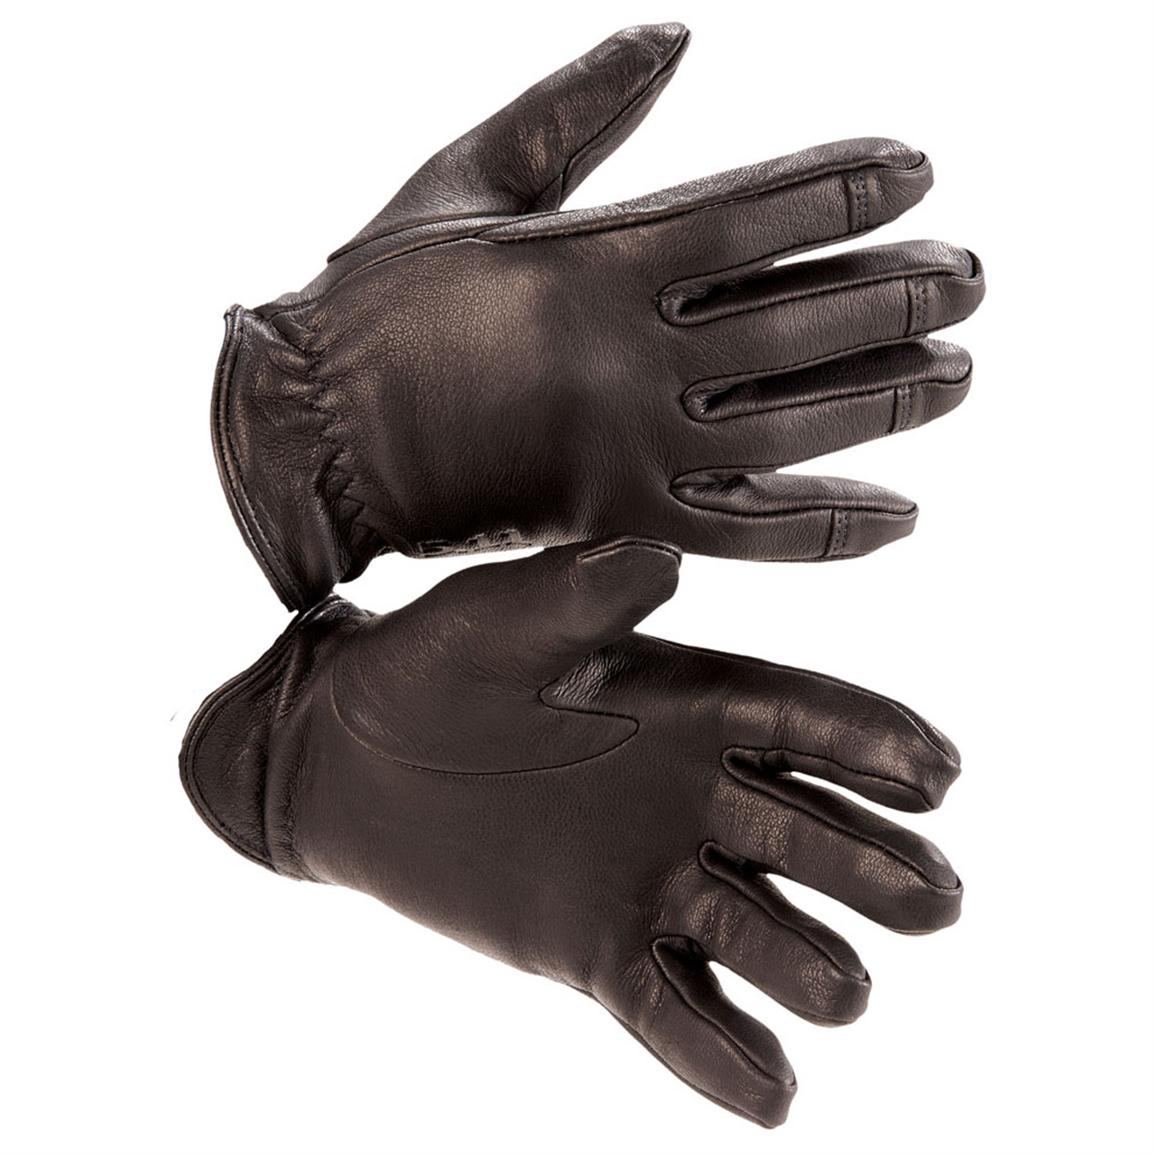 5.11 Tactical® Praetorian 2 Thinsulate™ C100 Insulated Gloves